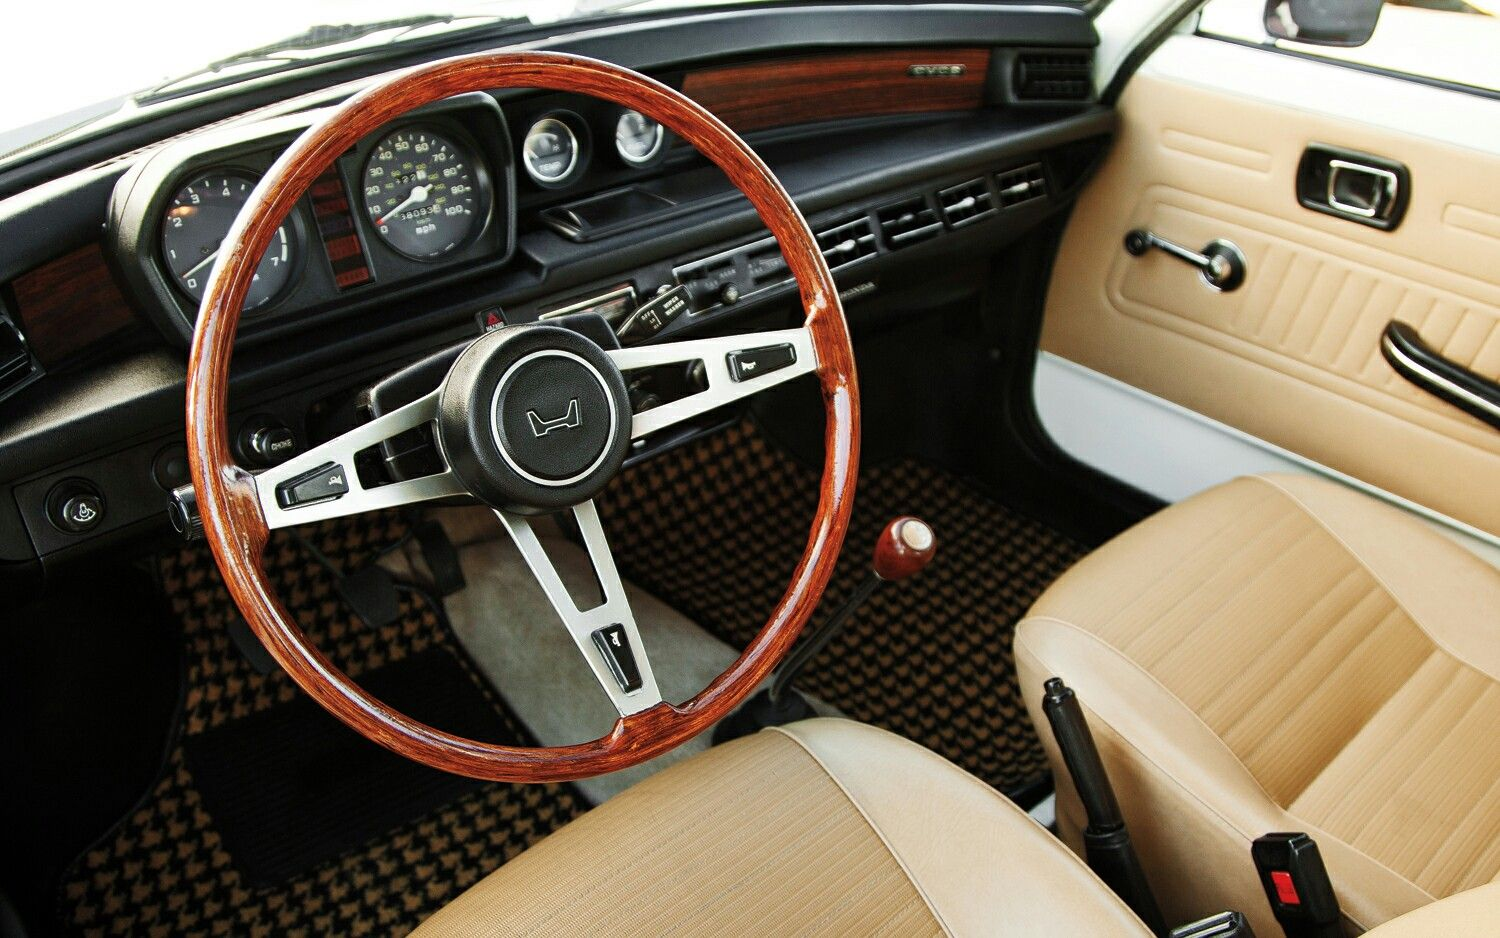 1973 Honda Civic Interior